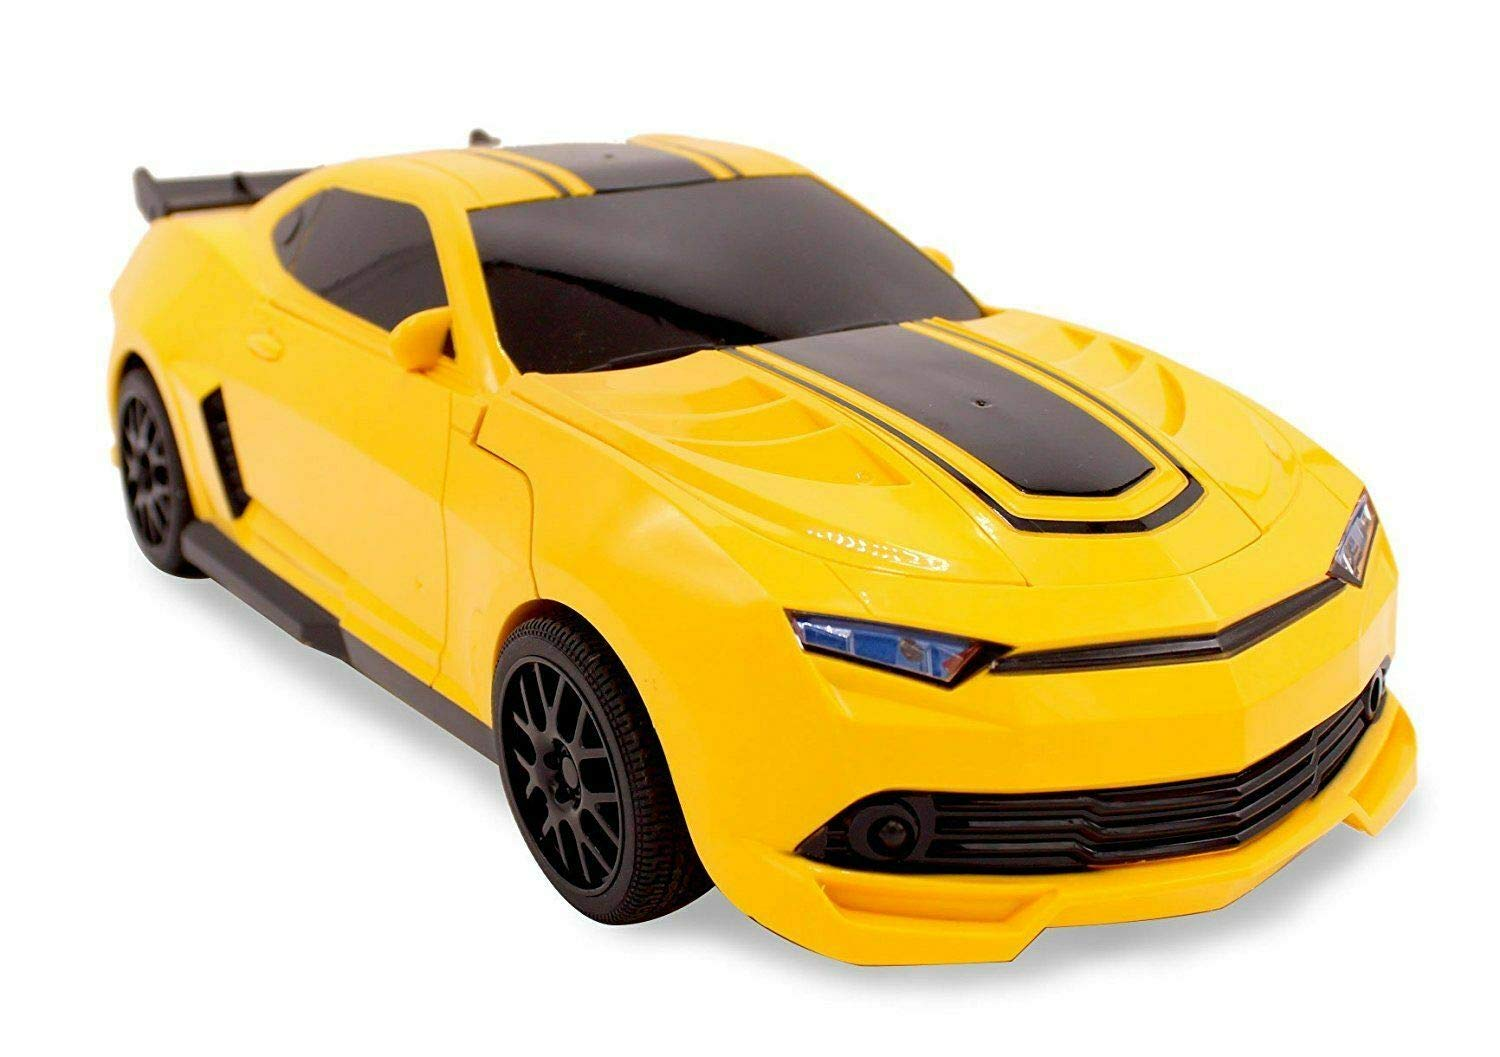 Kids RC Toy Sports Car Transforming Robot Remote Control with One Button Transformation, Realistic Engine Sounds, 360 Speed Drifting, Sword and Shield Included Toys For Boys 1:14 Scale Yellow by Transformania Toys (Image #2)